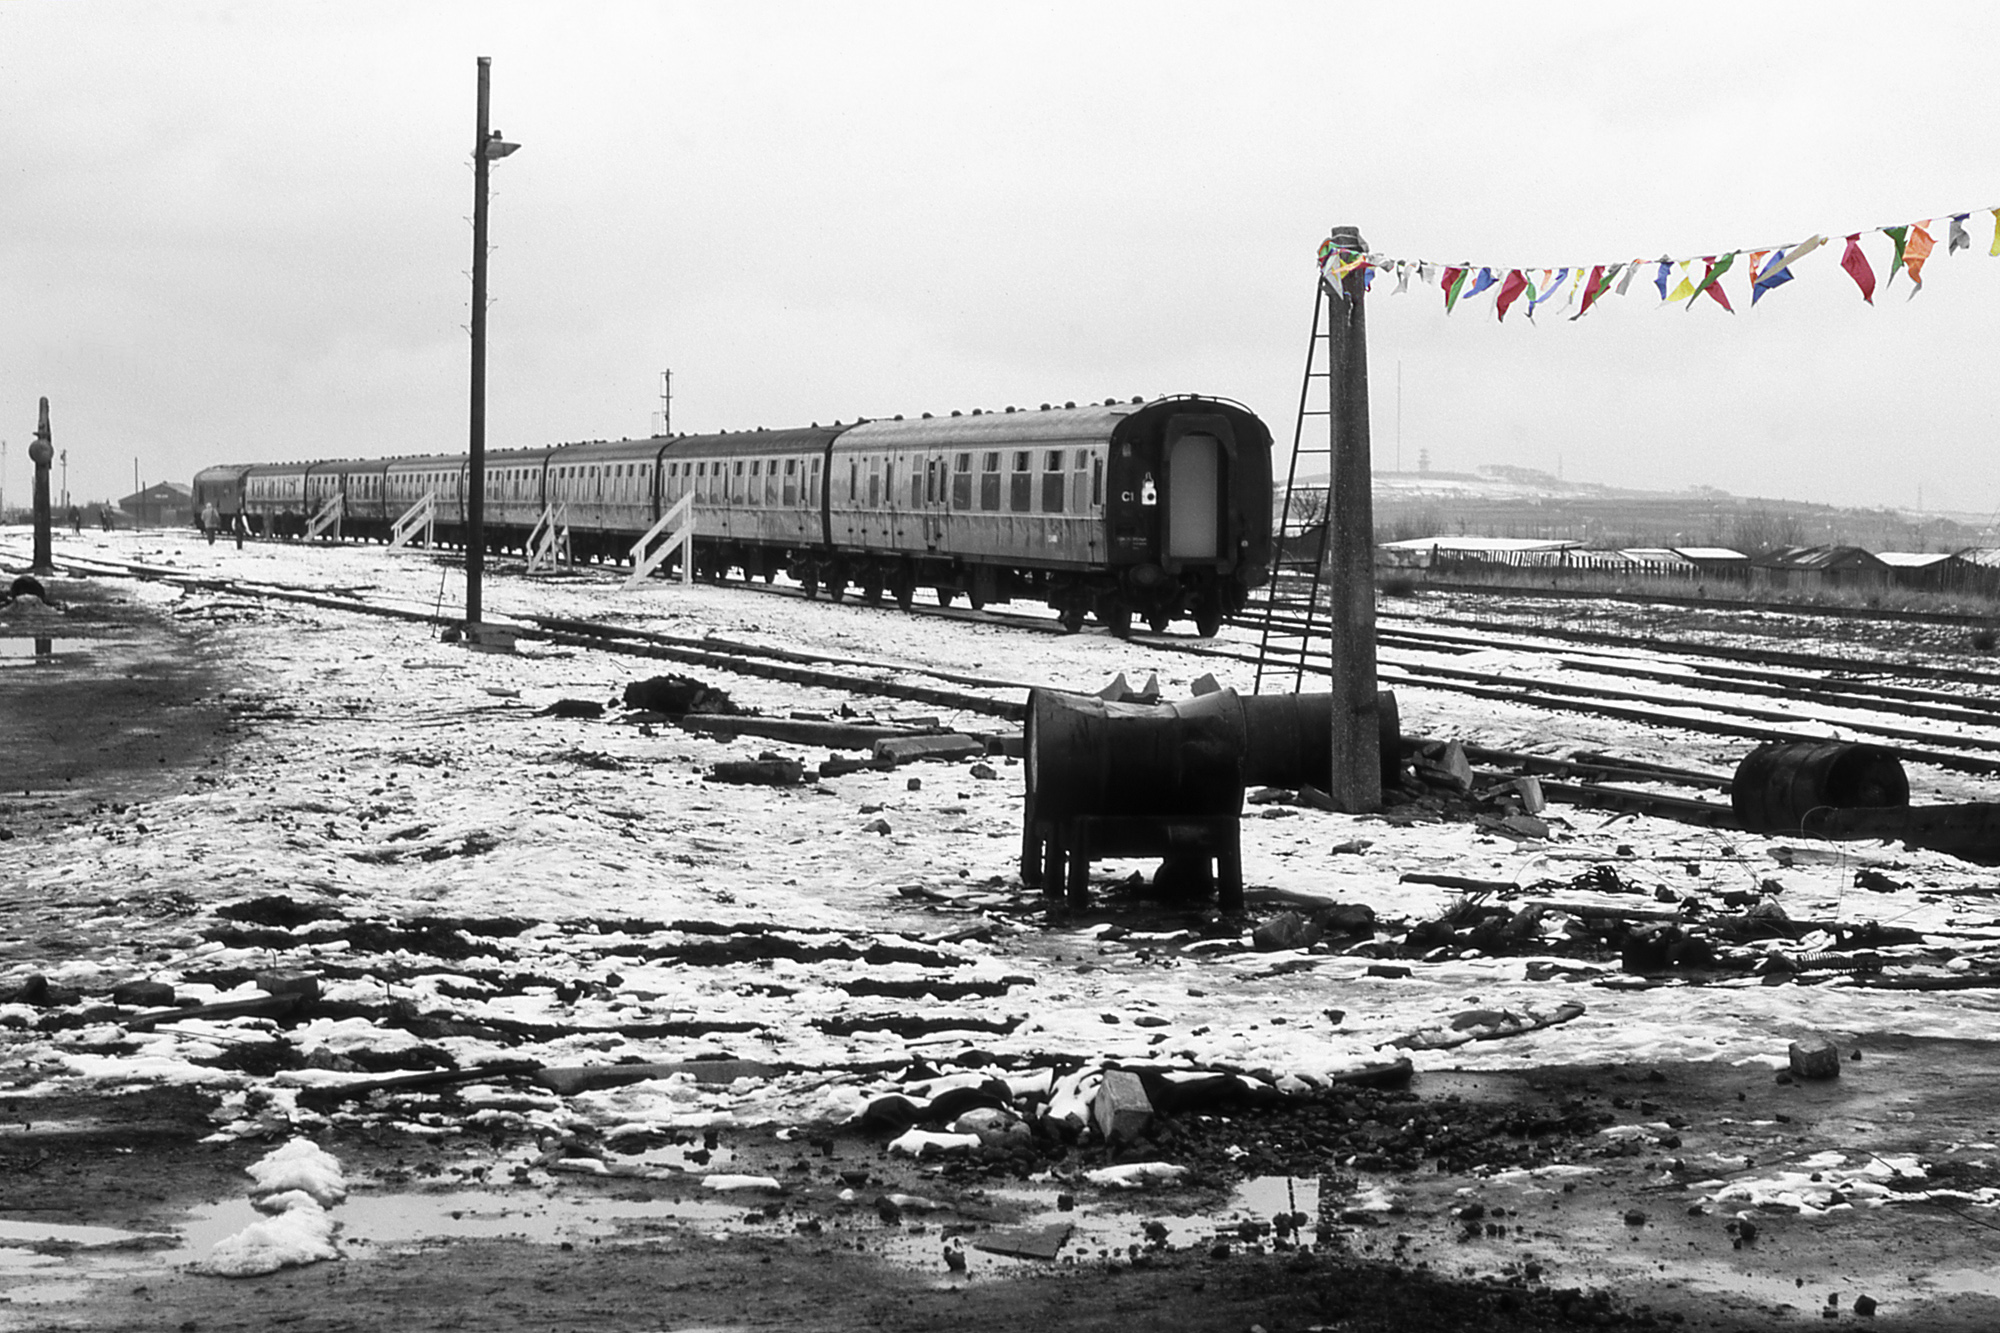 The last passenger train gets ready to leave Consett. Photo copyright Stephen McGahon